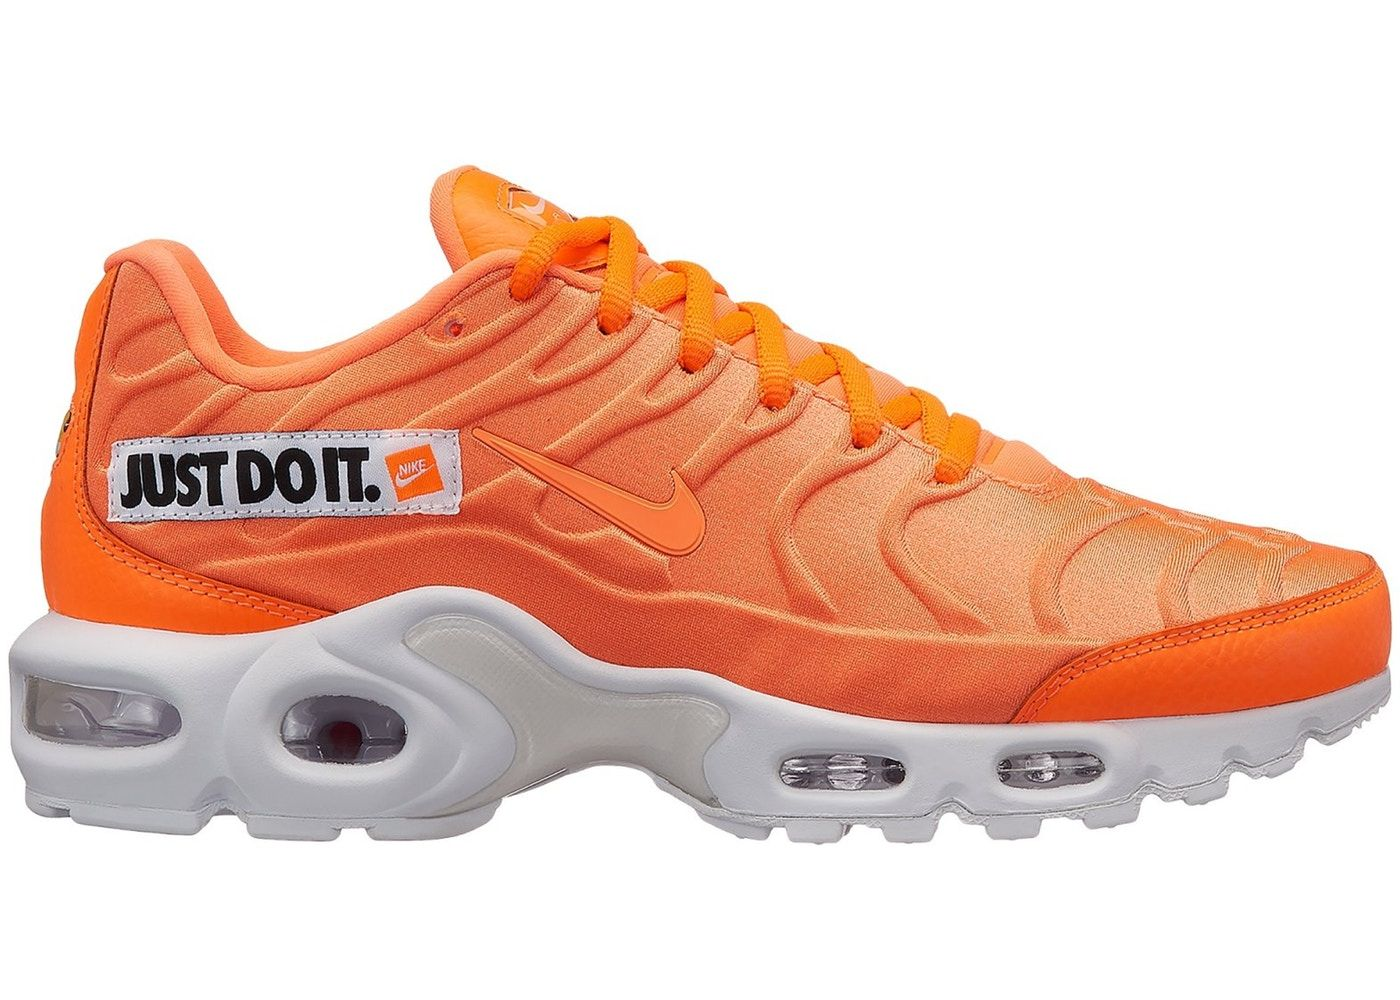 f0c3609a06 Check out the Air Max Plus Just Do It Pack Orange (W) available on StockX